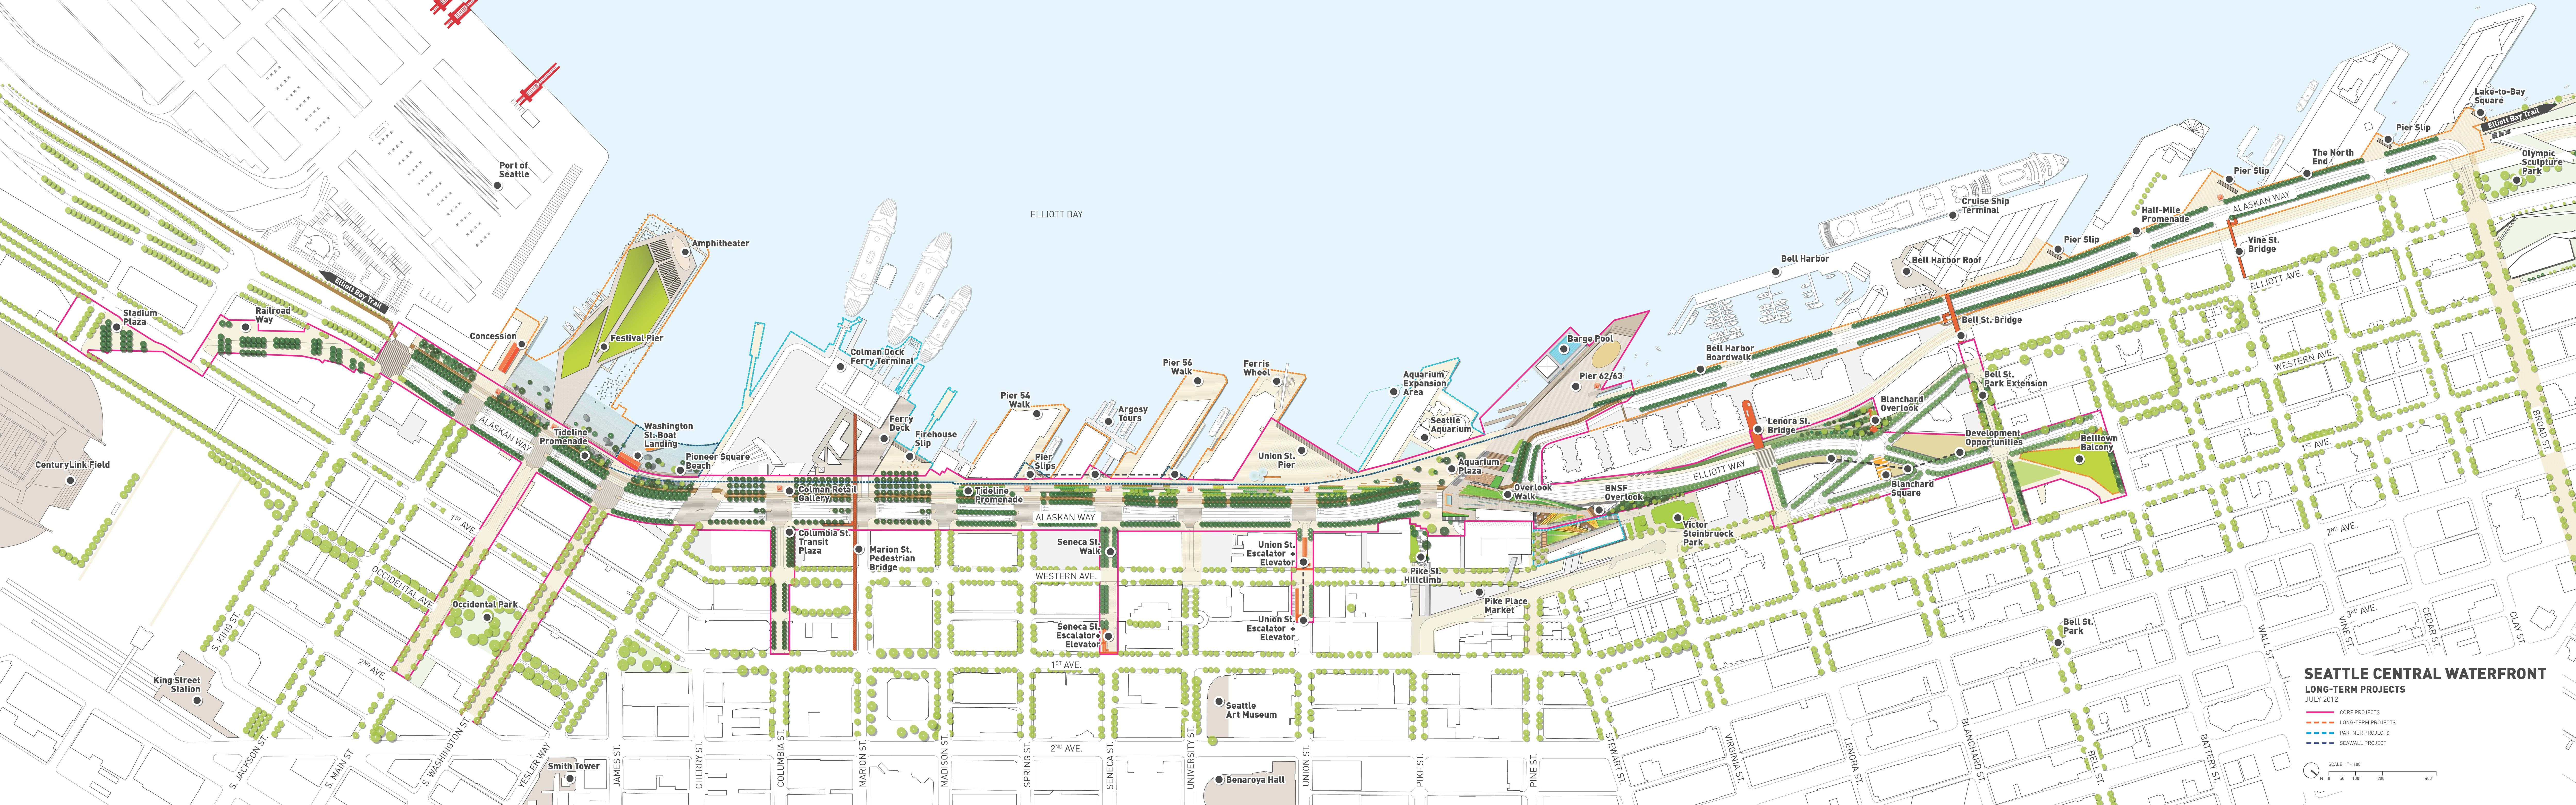 Super The Vision For Seattles Waterfront The Northwest Urbanist Largest Home Design Picture Inspirations Pitcheantrous